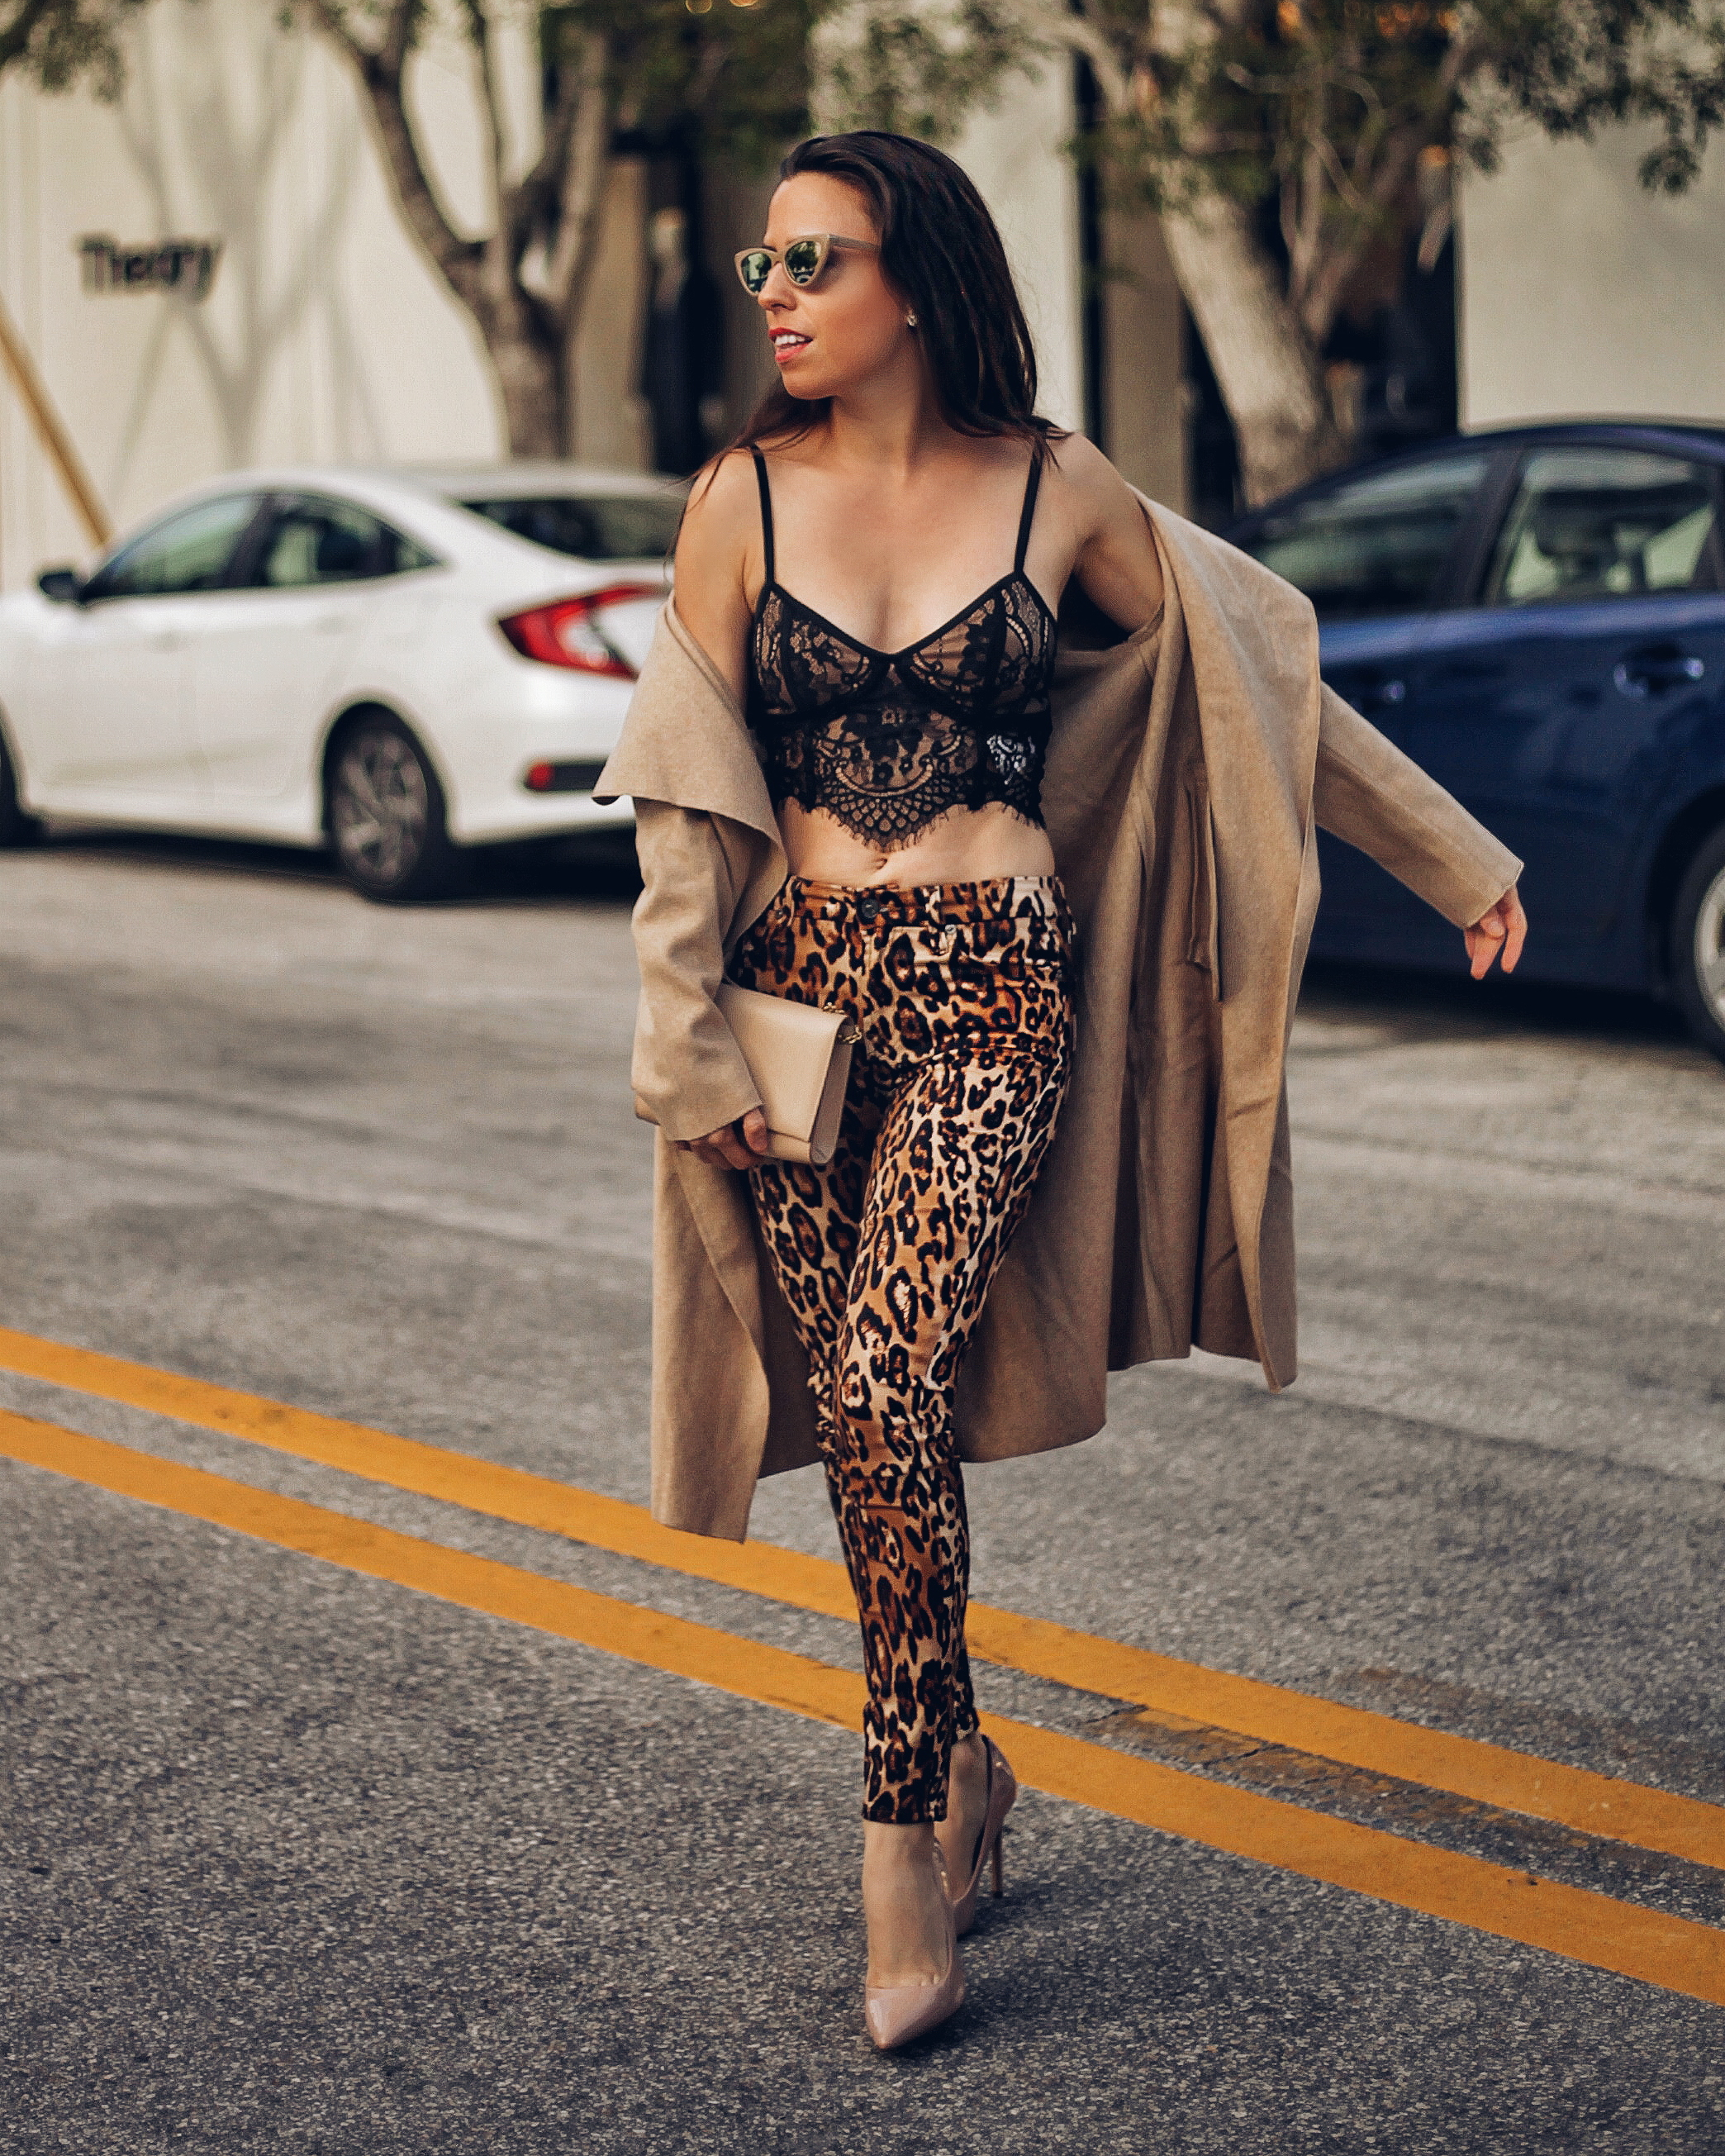 MIAMI FASHION BLOGGER ANA FLORENTINA